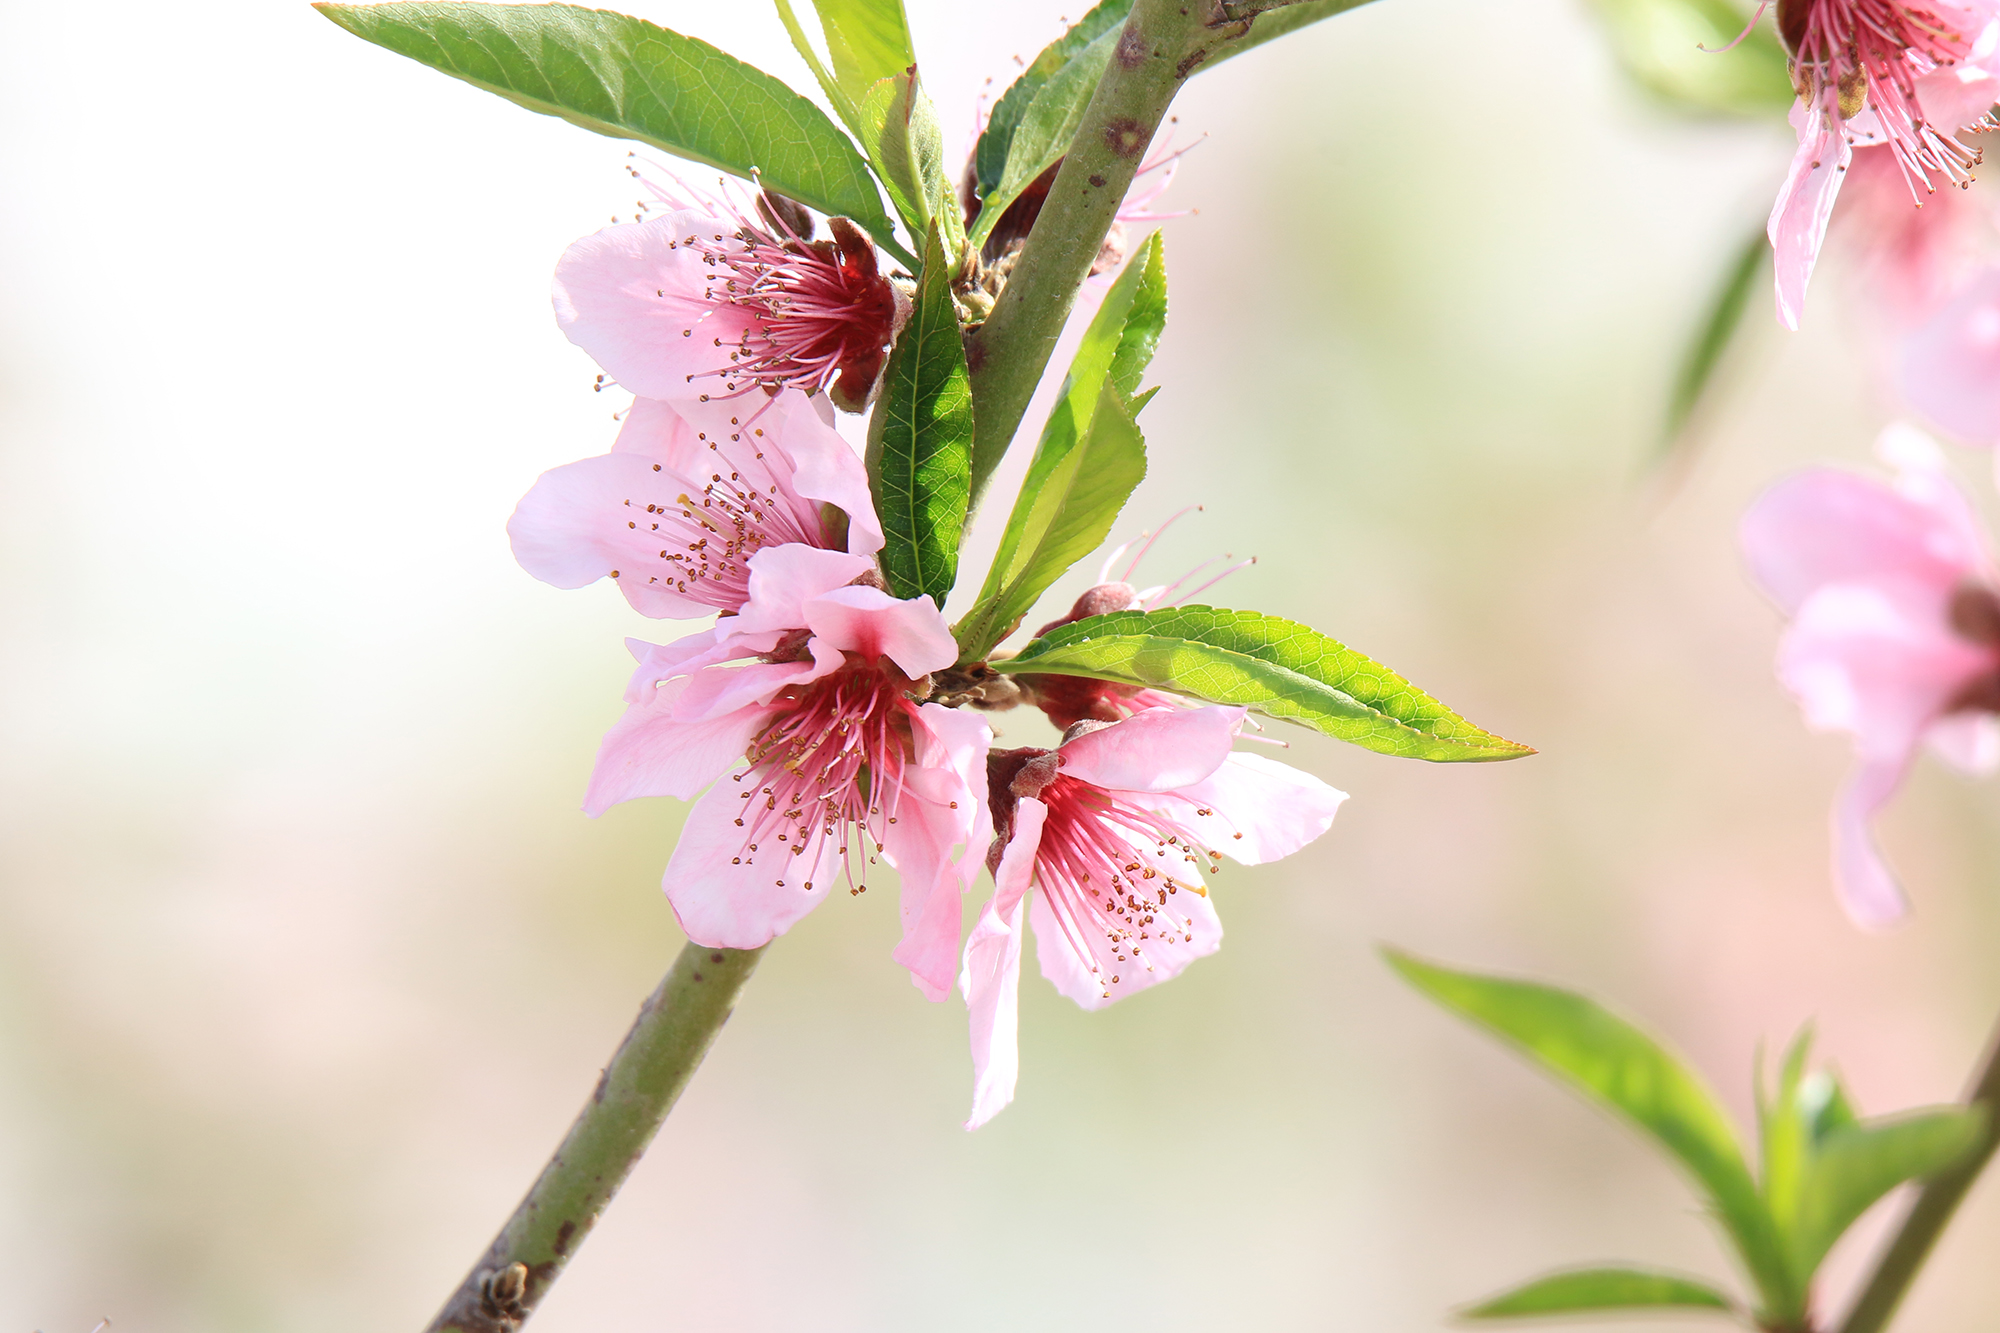 Peach tree blossom - Kopel Photography